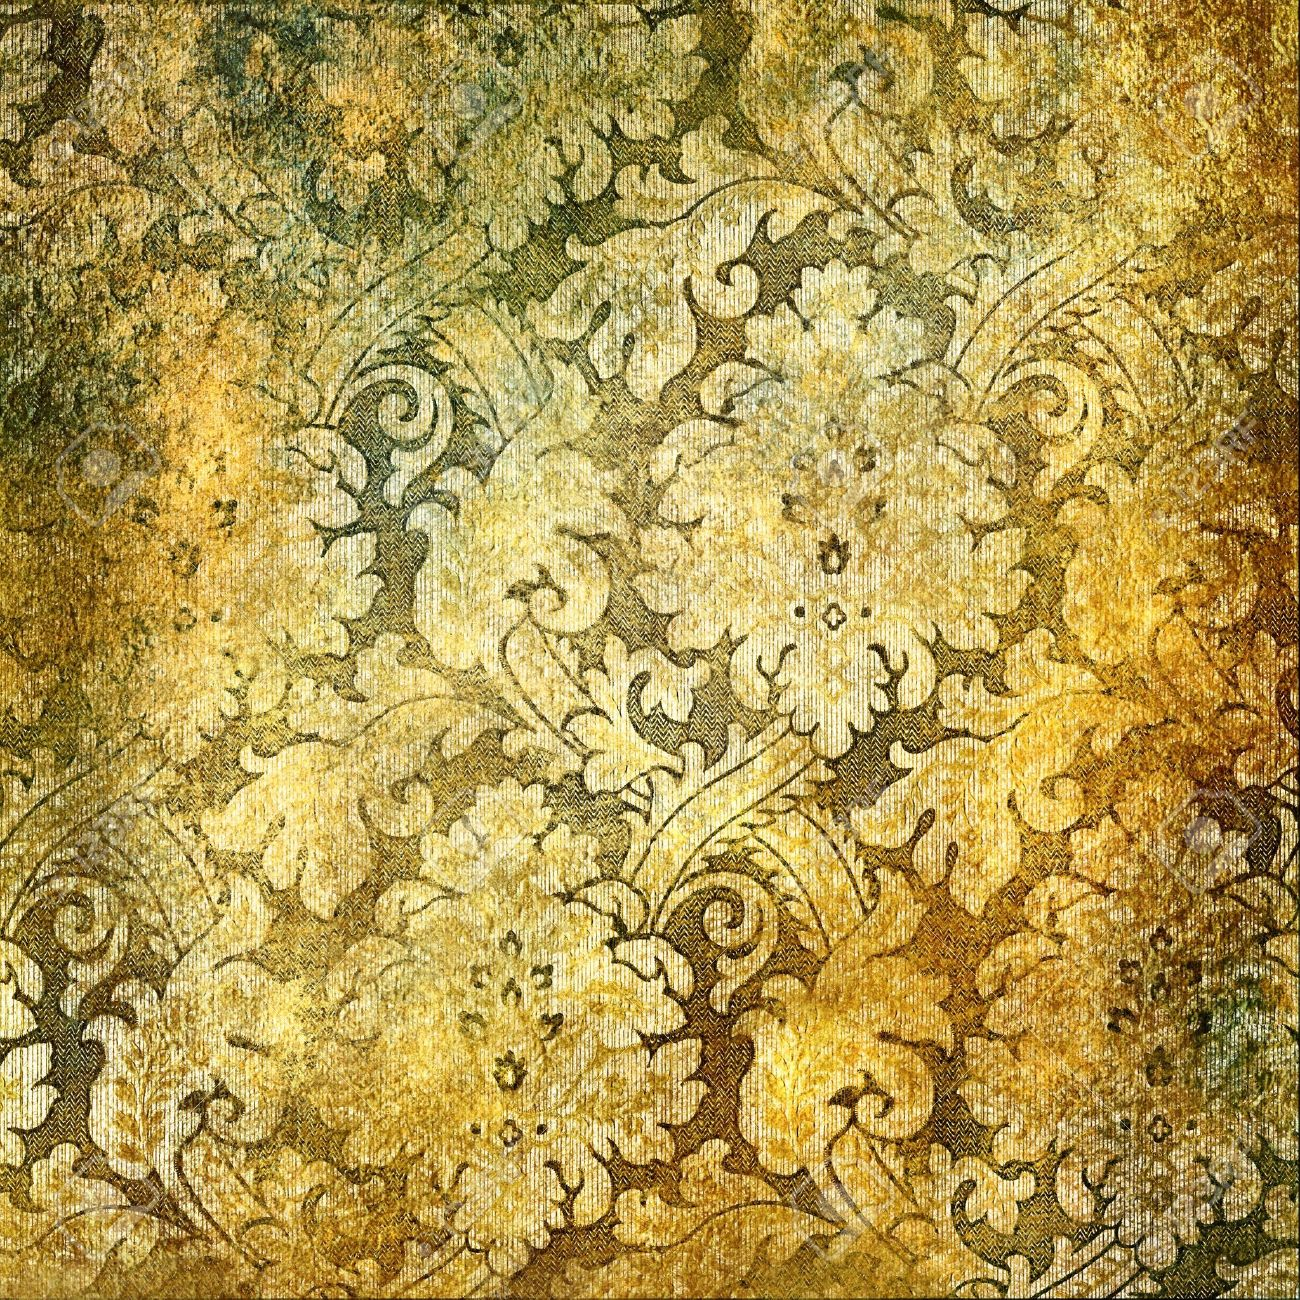 Vintage Golden Wallpaper Stock Photo Picture And Royalty Free Image